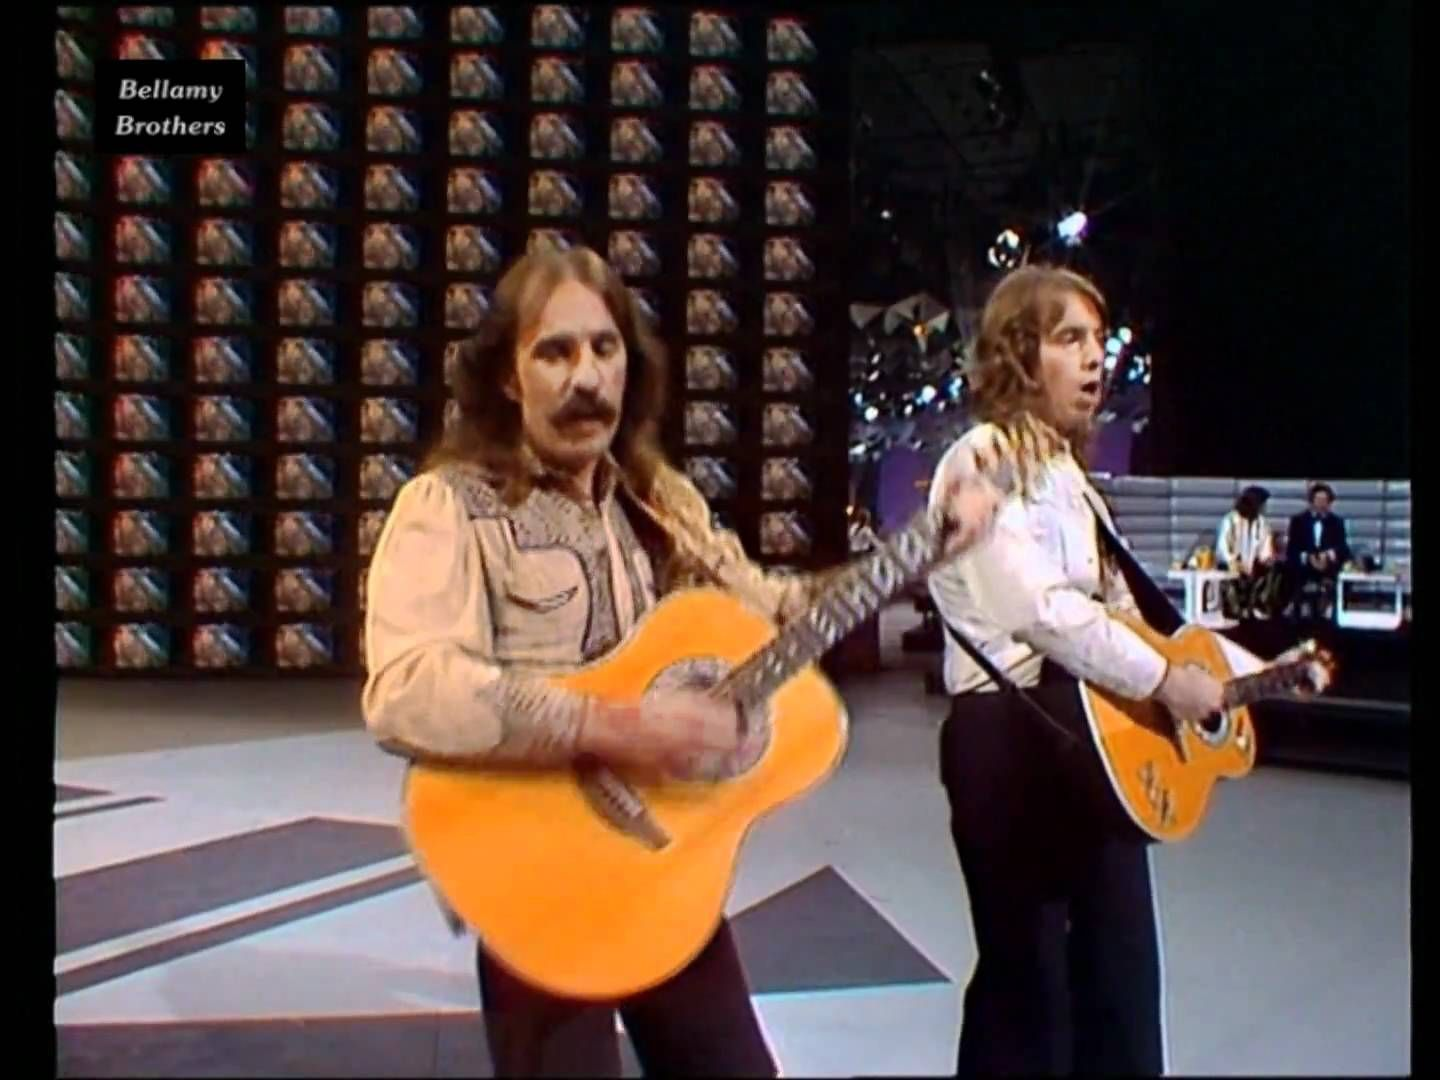 Bellamy Brothers Let Your Love Flow 1976 Hd 0815007 In 2019